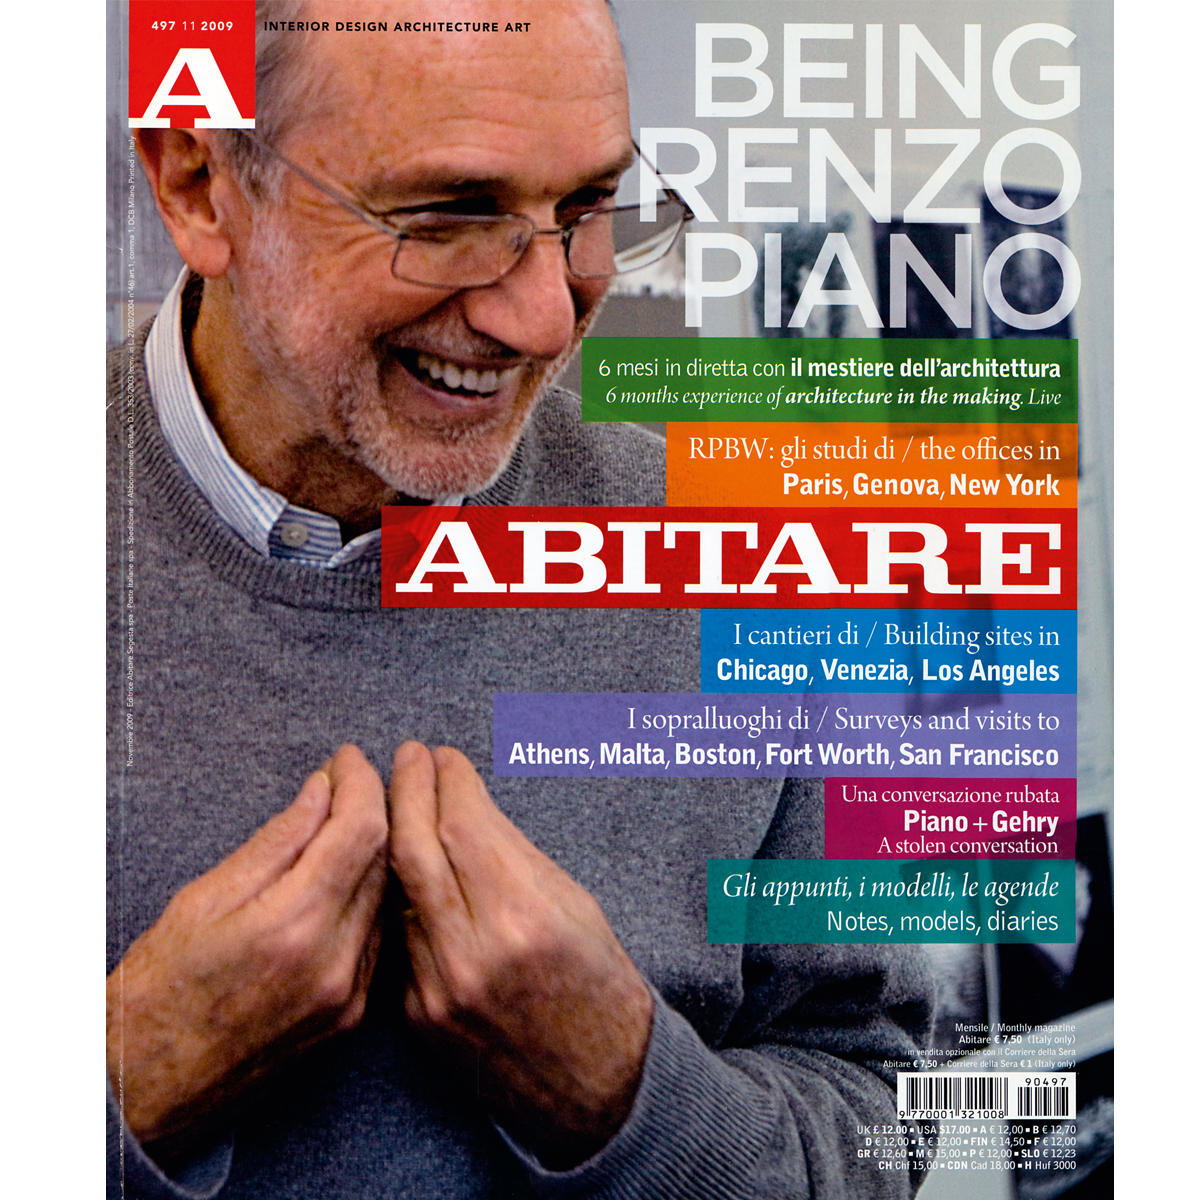 Abitare: Being Renzo Piano